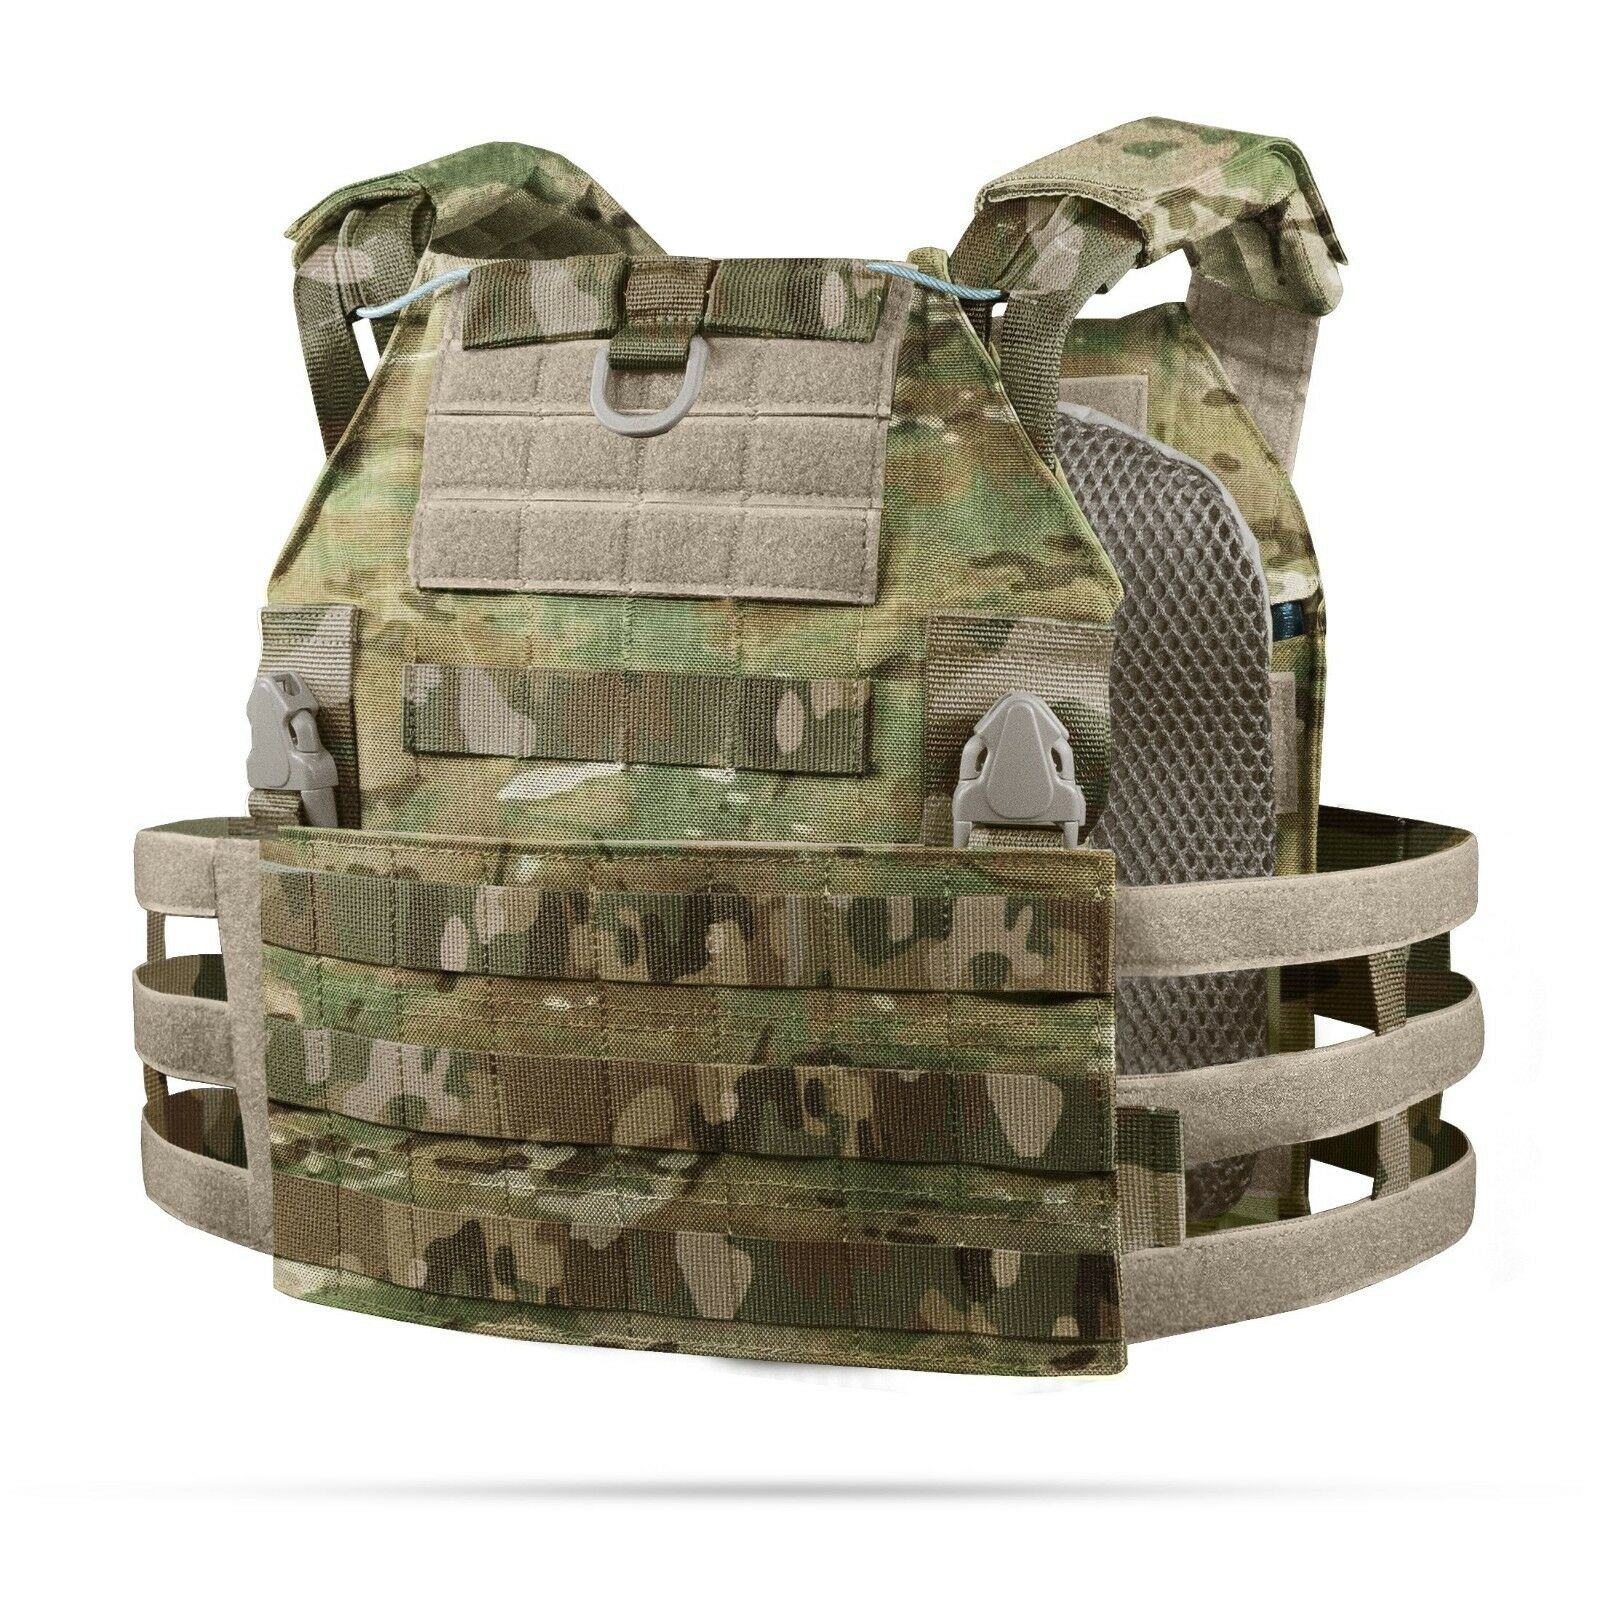 TACTICAL PLATE CARRIER VEST in MULTICAM  ( Also in other colors ) by STICH PROFI  official website